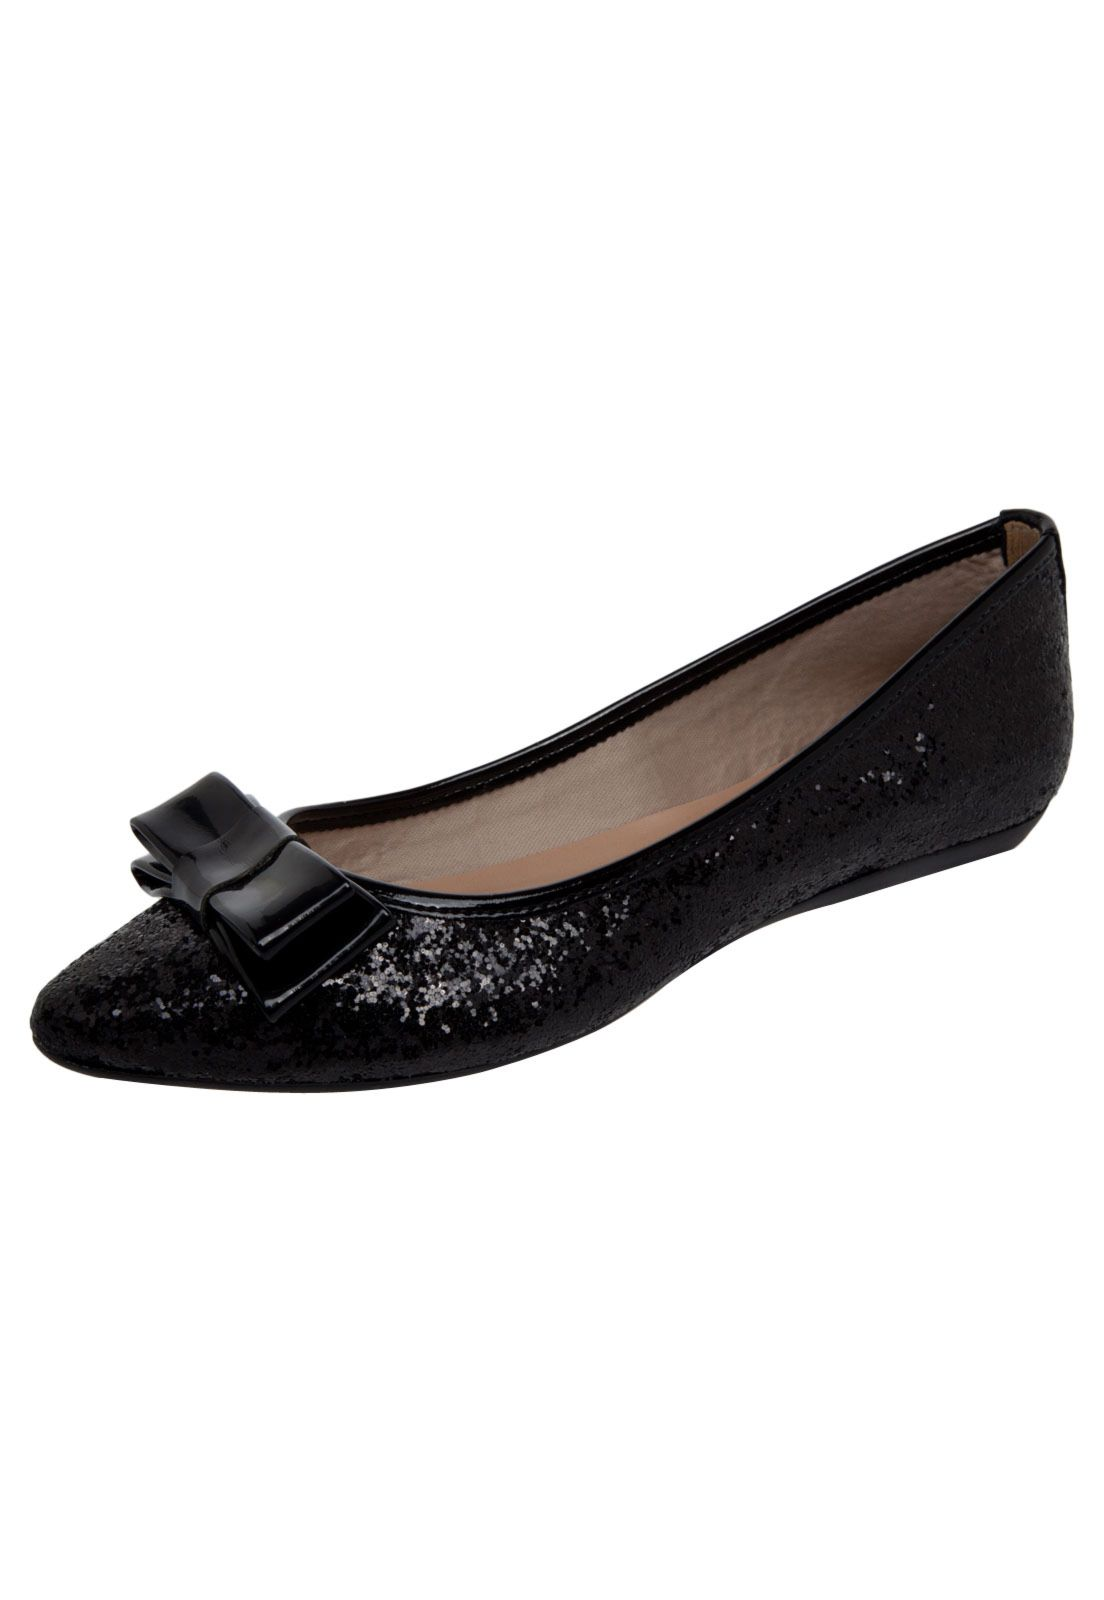 7dcad3be7db Sapatilha DAFITI SHOES Preta - Marca DAFITI SHOES